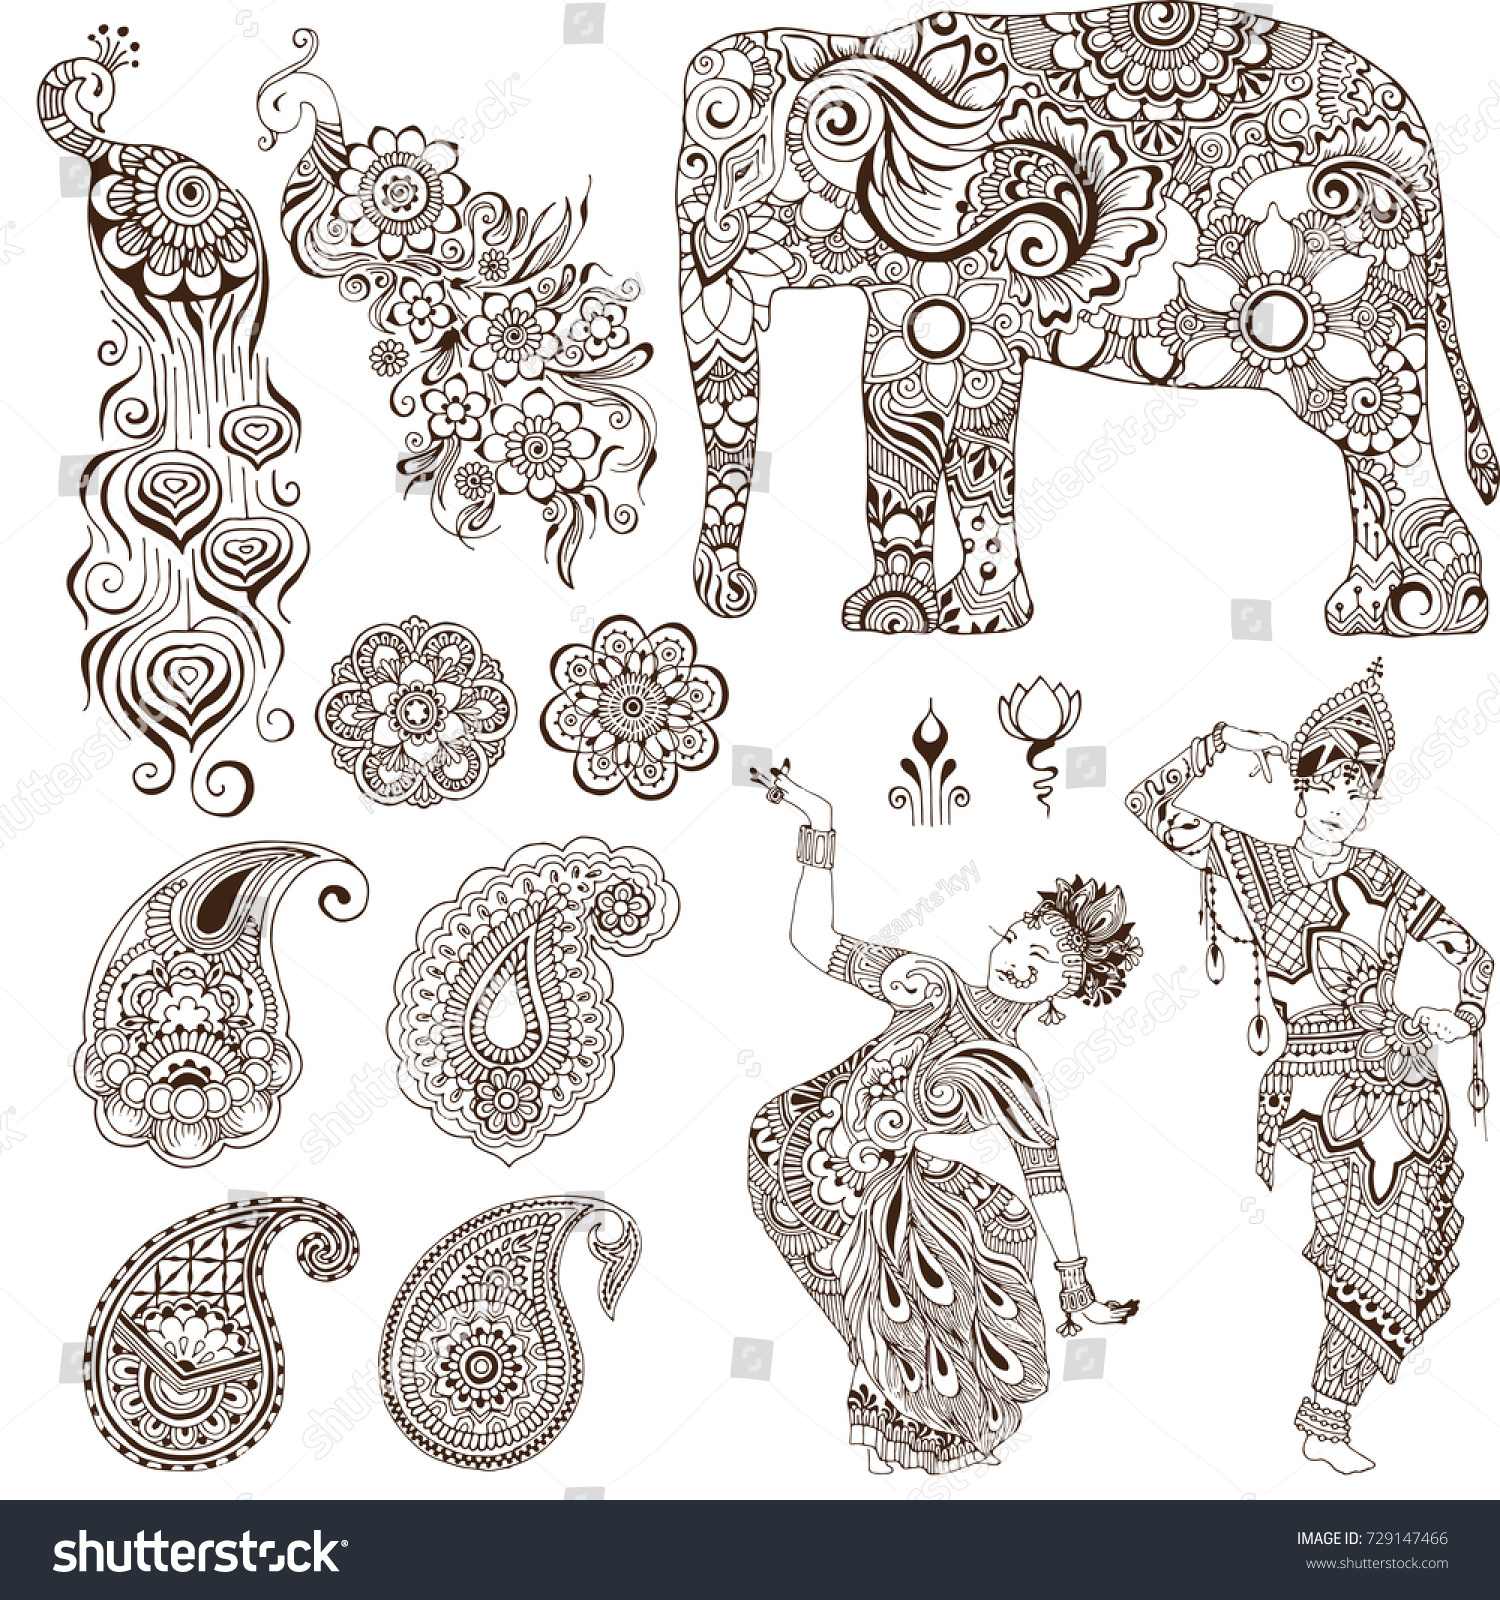 Elephant Dancers Peacock Paisley In The Mehendi Style Set Of Ornate Elements